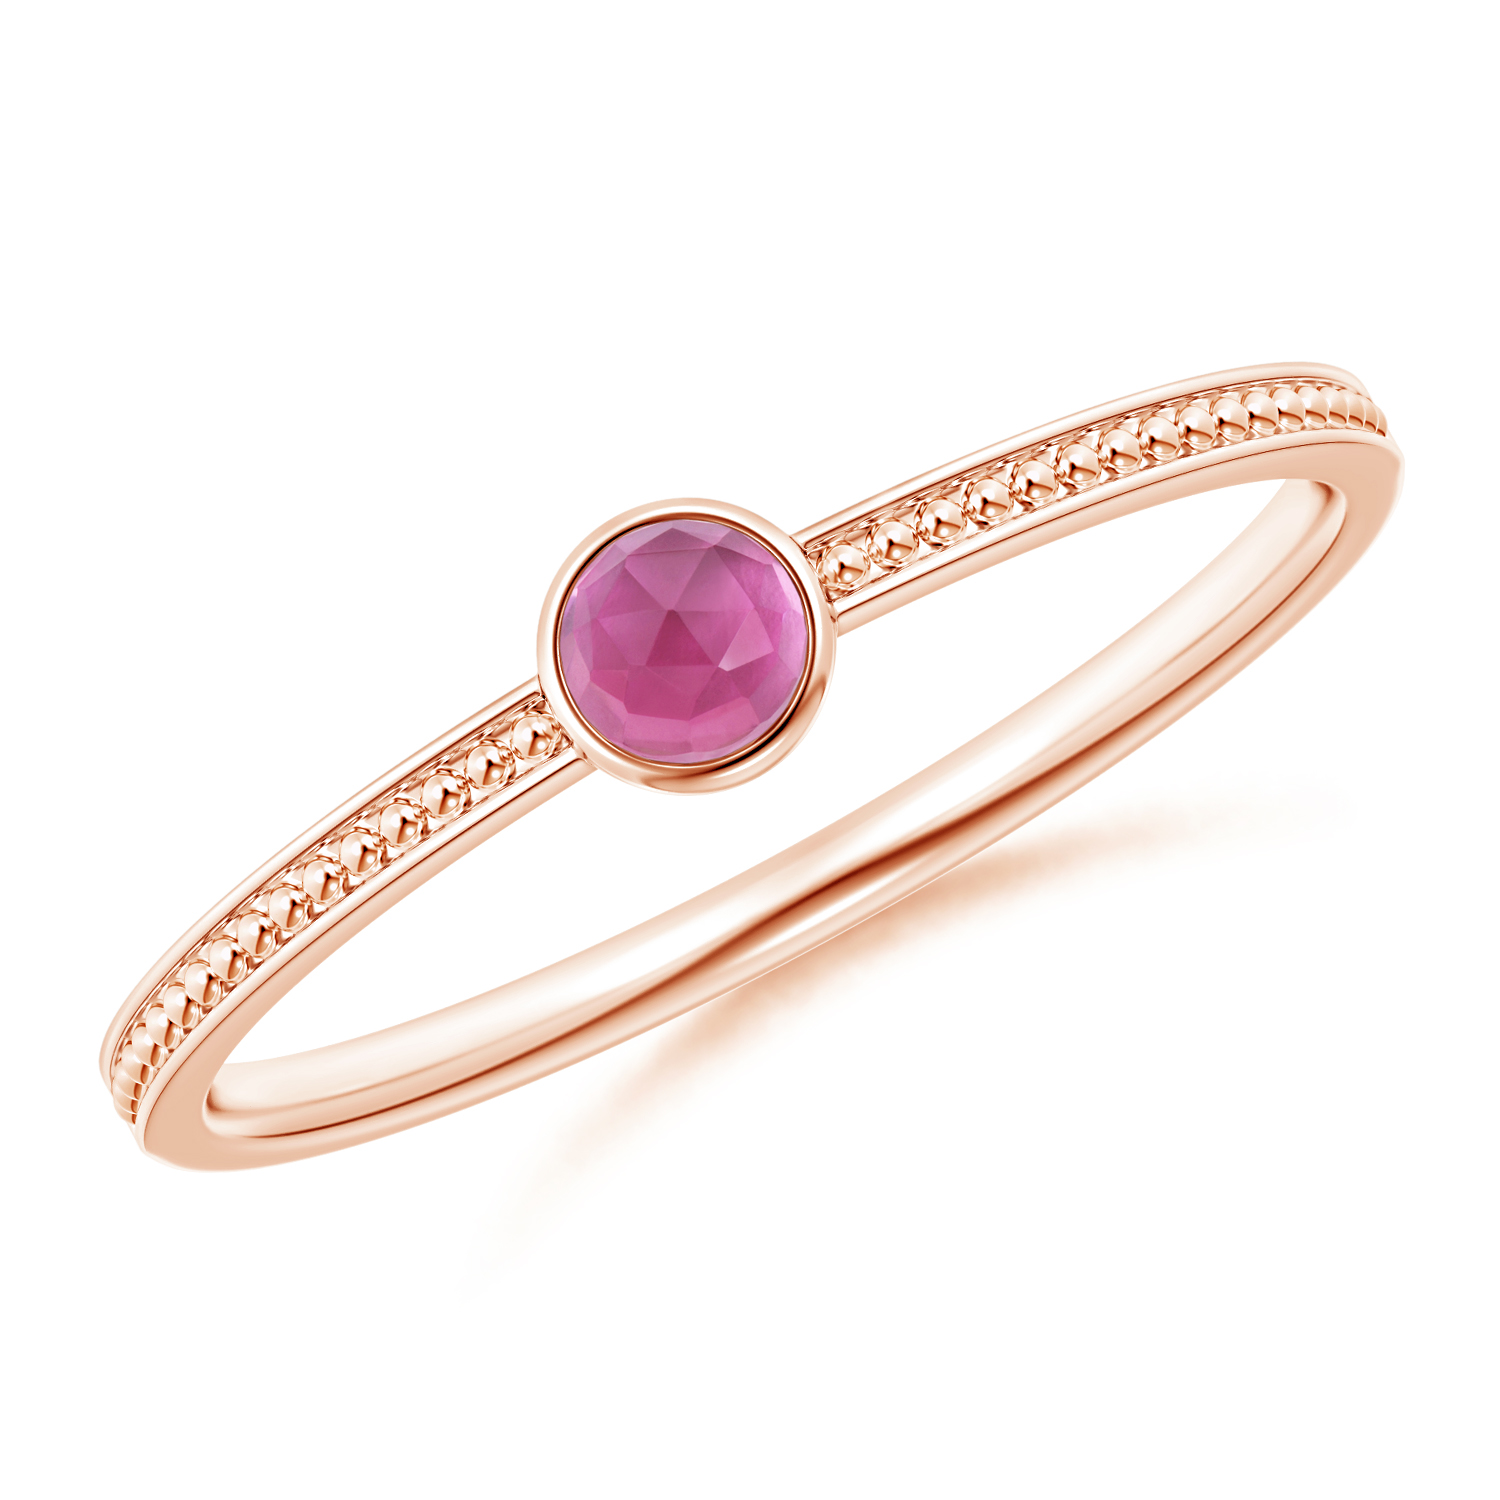 Bezel Set Pink Tourmaline Ring with Beaded Groove Shank - Angara.com